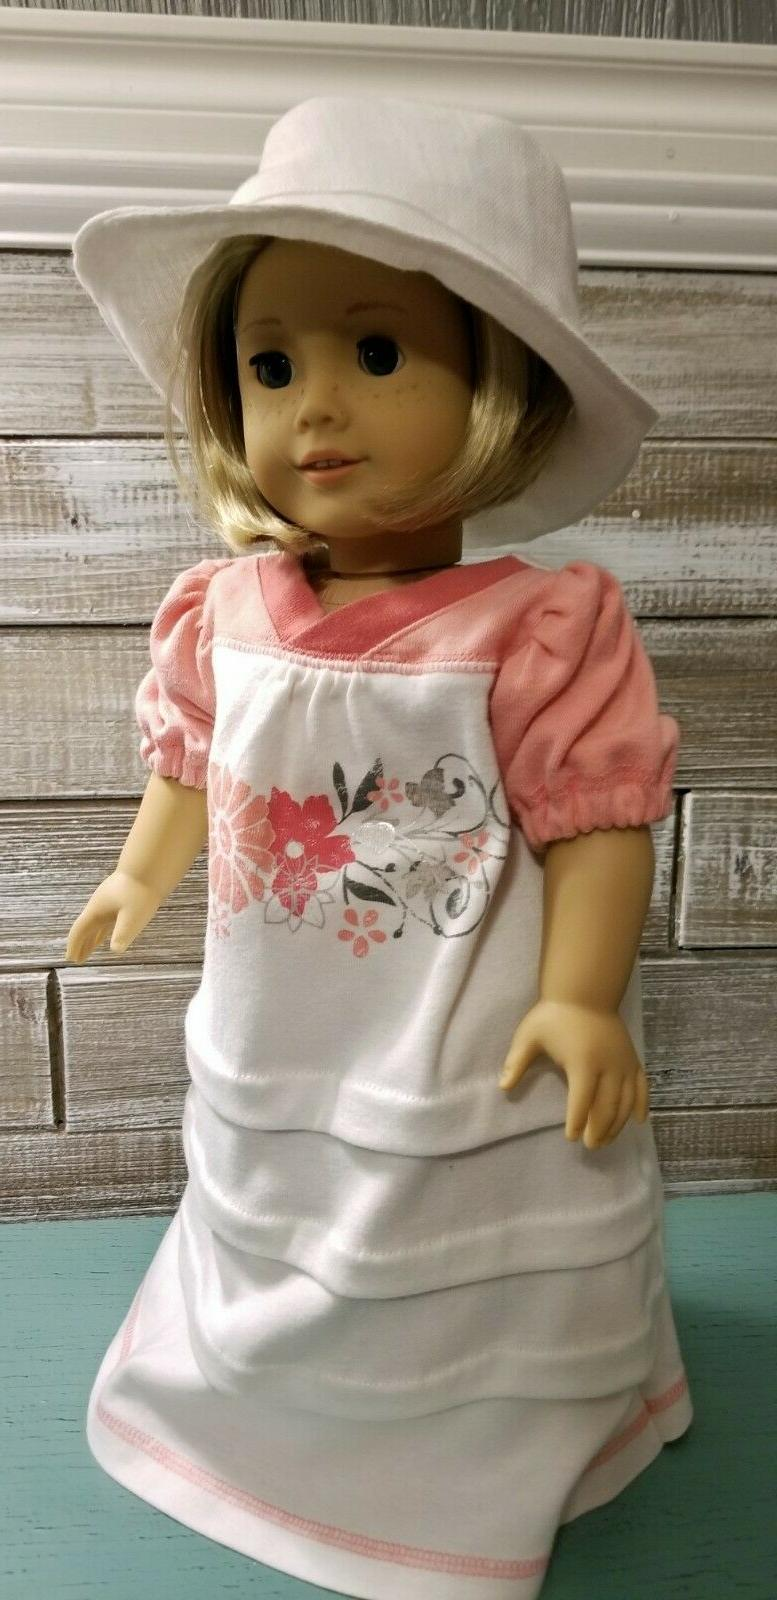 doll clothes for the american girl doll